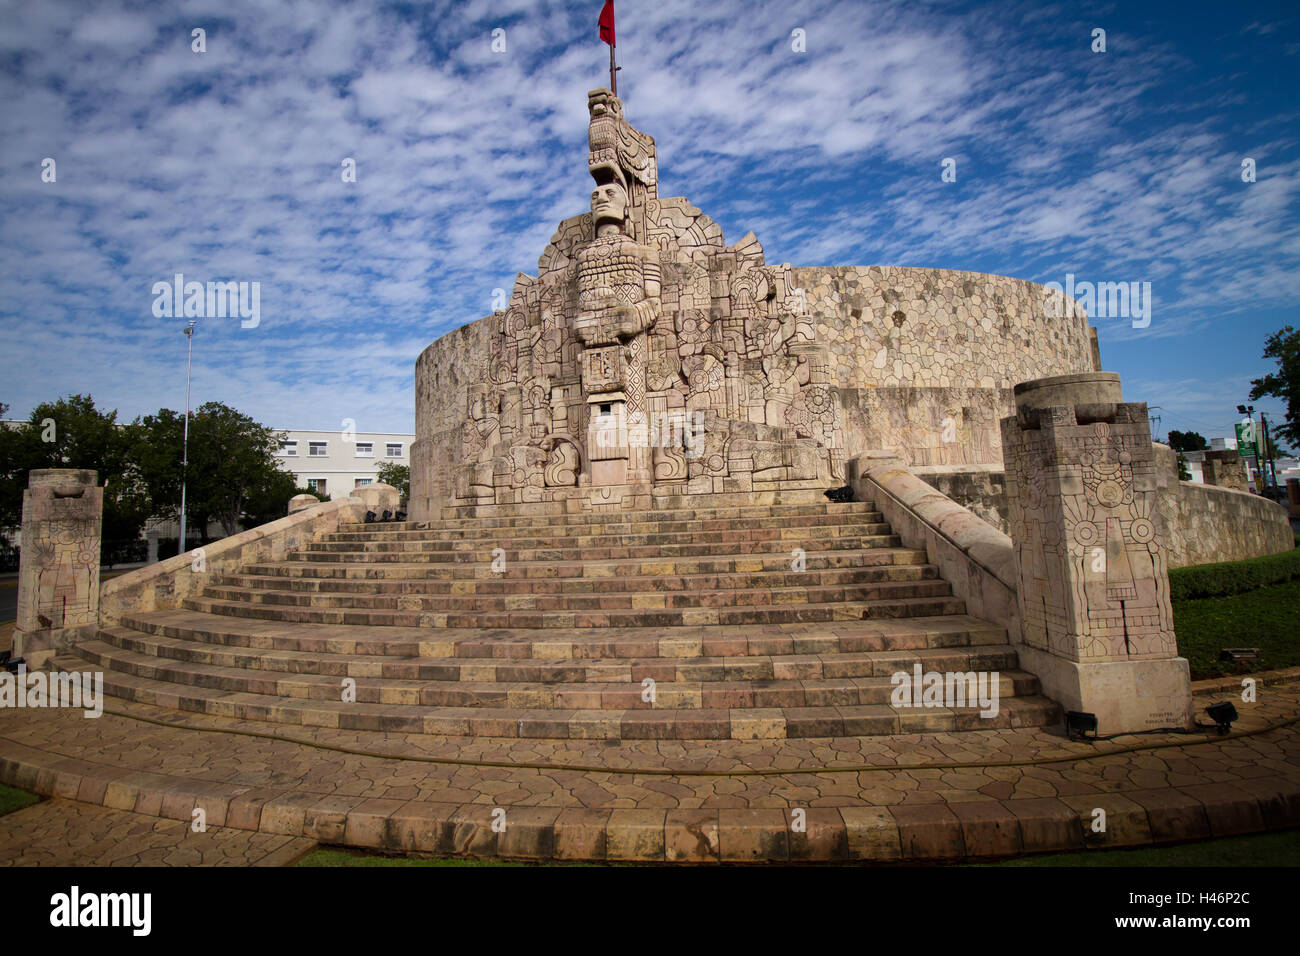 monument in merida in mayan style - Stock Image